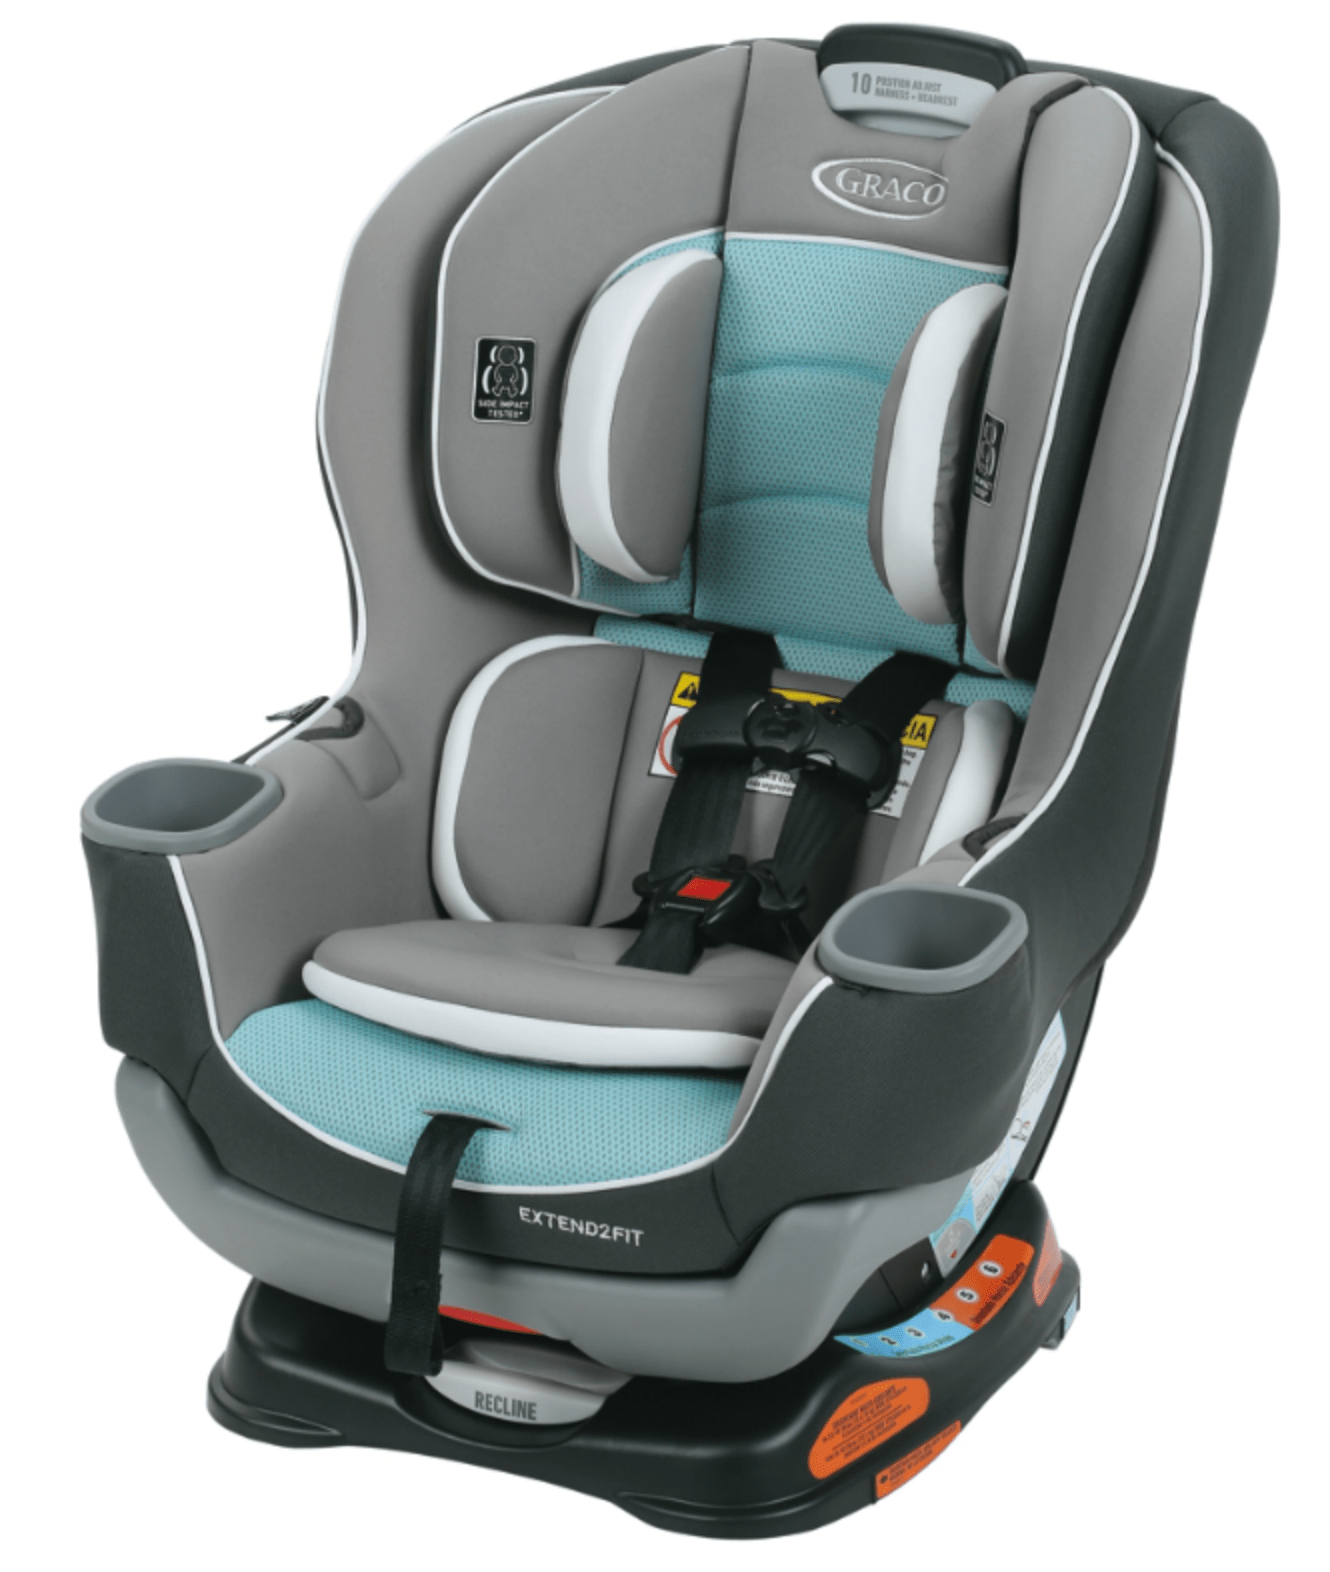 Graco Infant Car Seat Stroller Instructions Carseatblog The Most Trusted Source For Car Seat Reviews